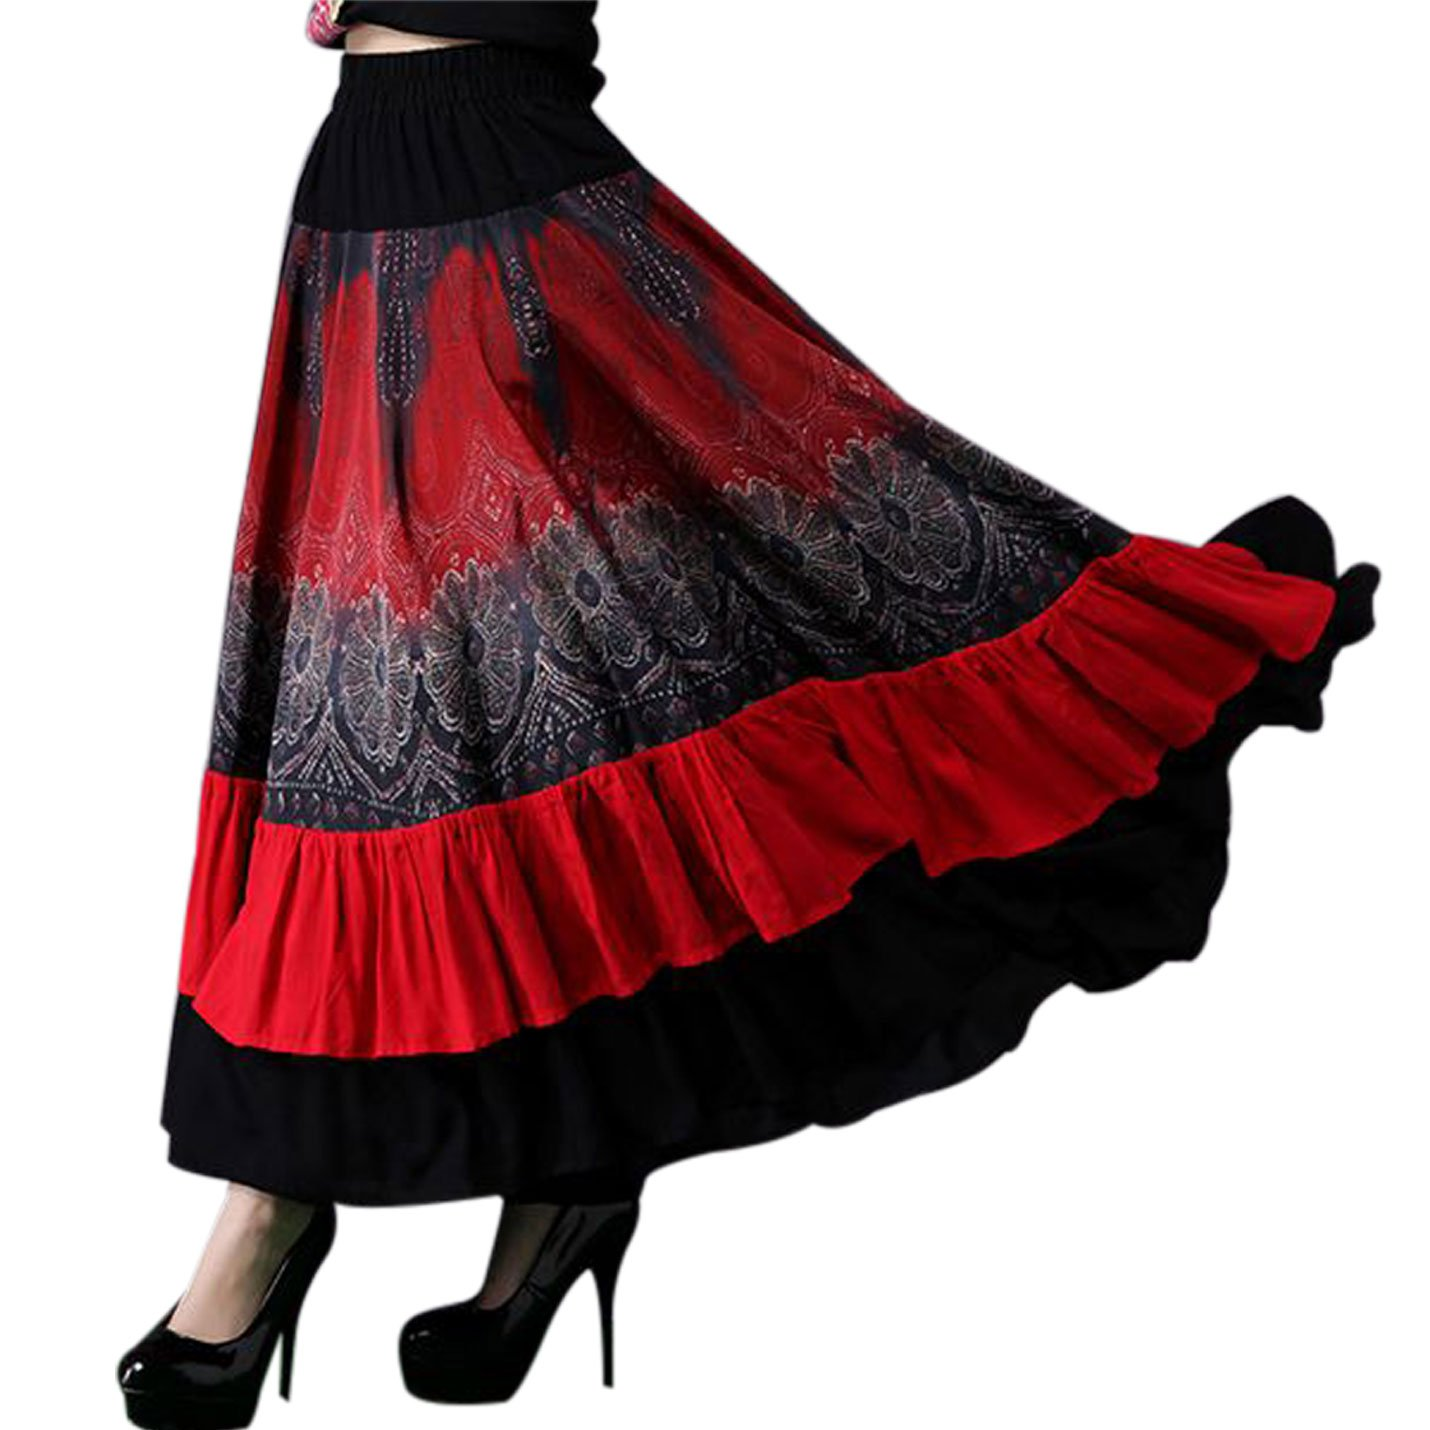 Yeokou Women's Bohemia Gypsy Floral Midi Long Red Flamenco Dance Swing Skirt Red) YK00278Red-OneSize